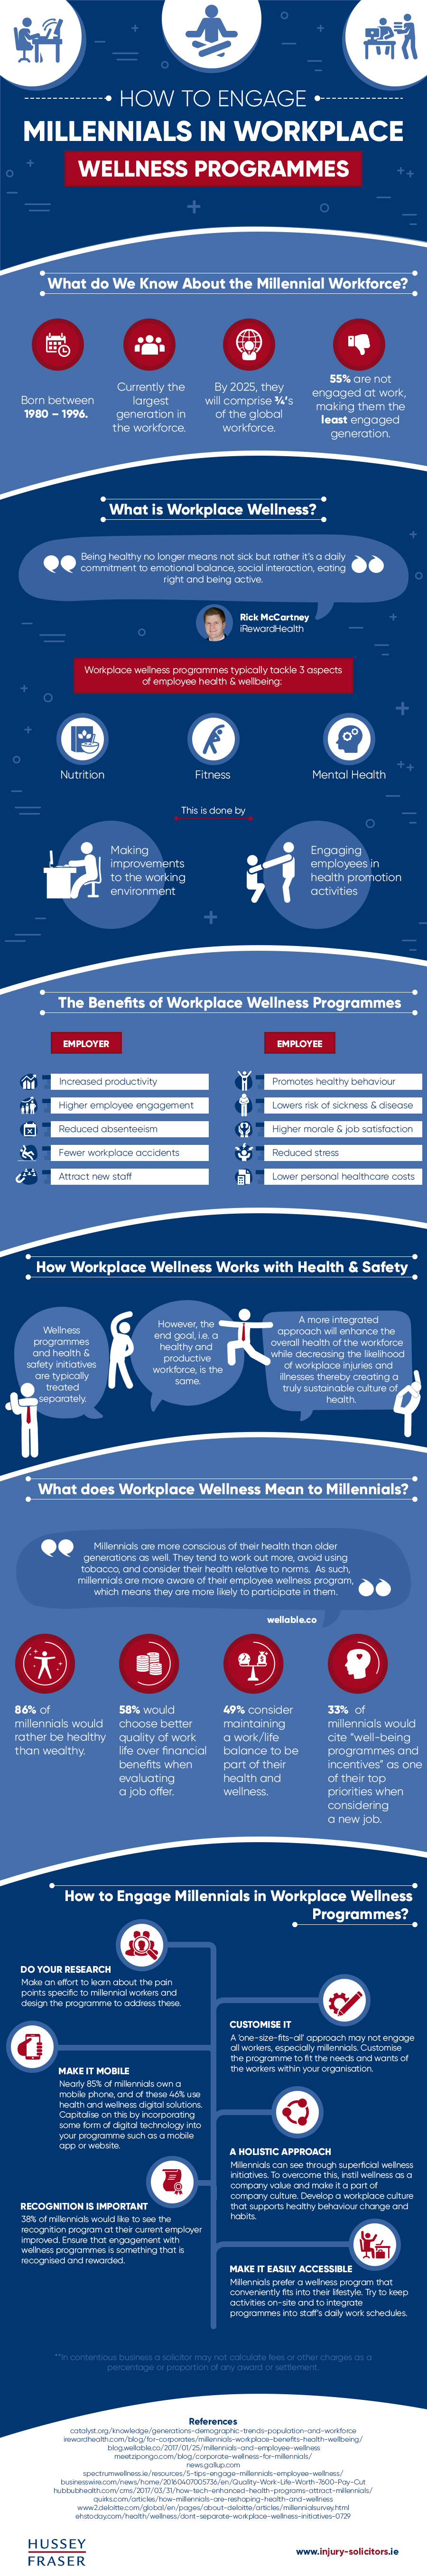 how-to-engage-millennials-in-workplace-wellness-programmes-infographic.jpg